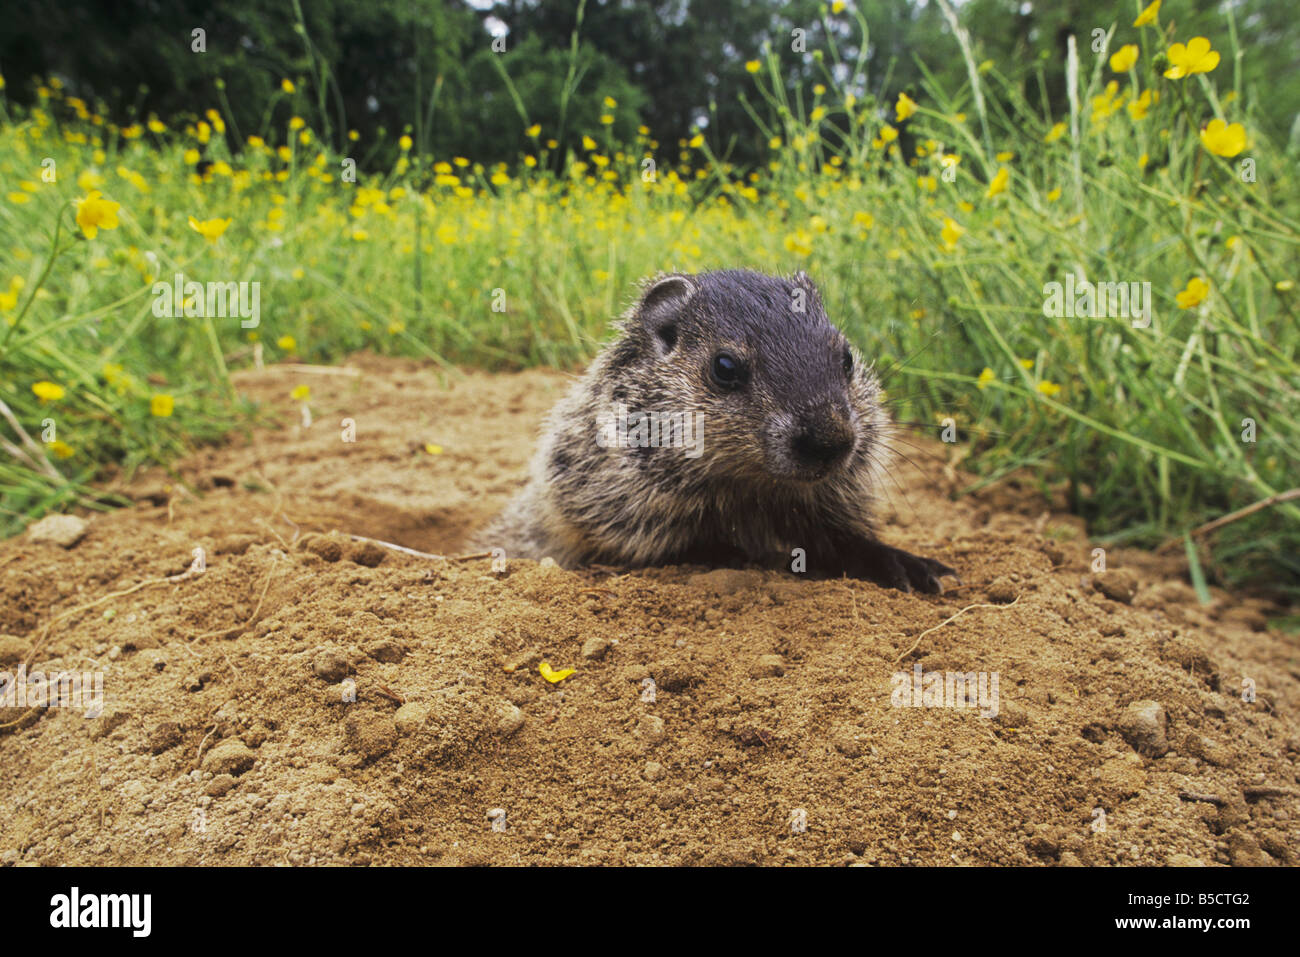 groundhog woodchuck marmota monax young looking out of burrow